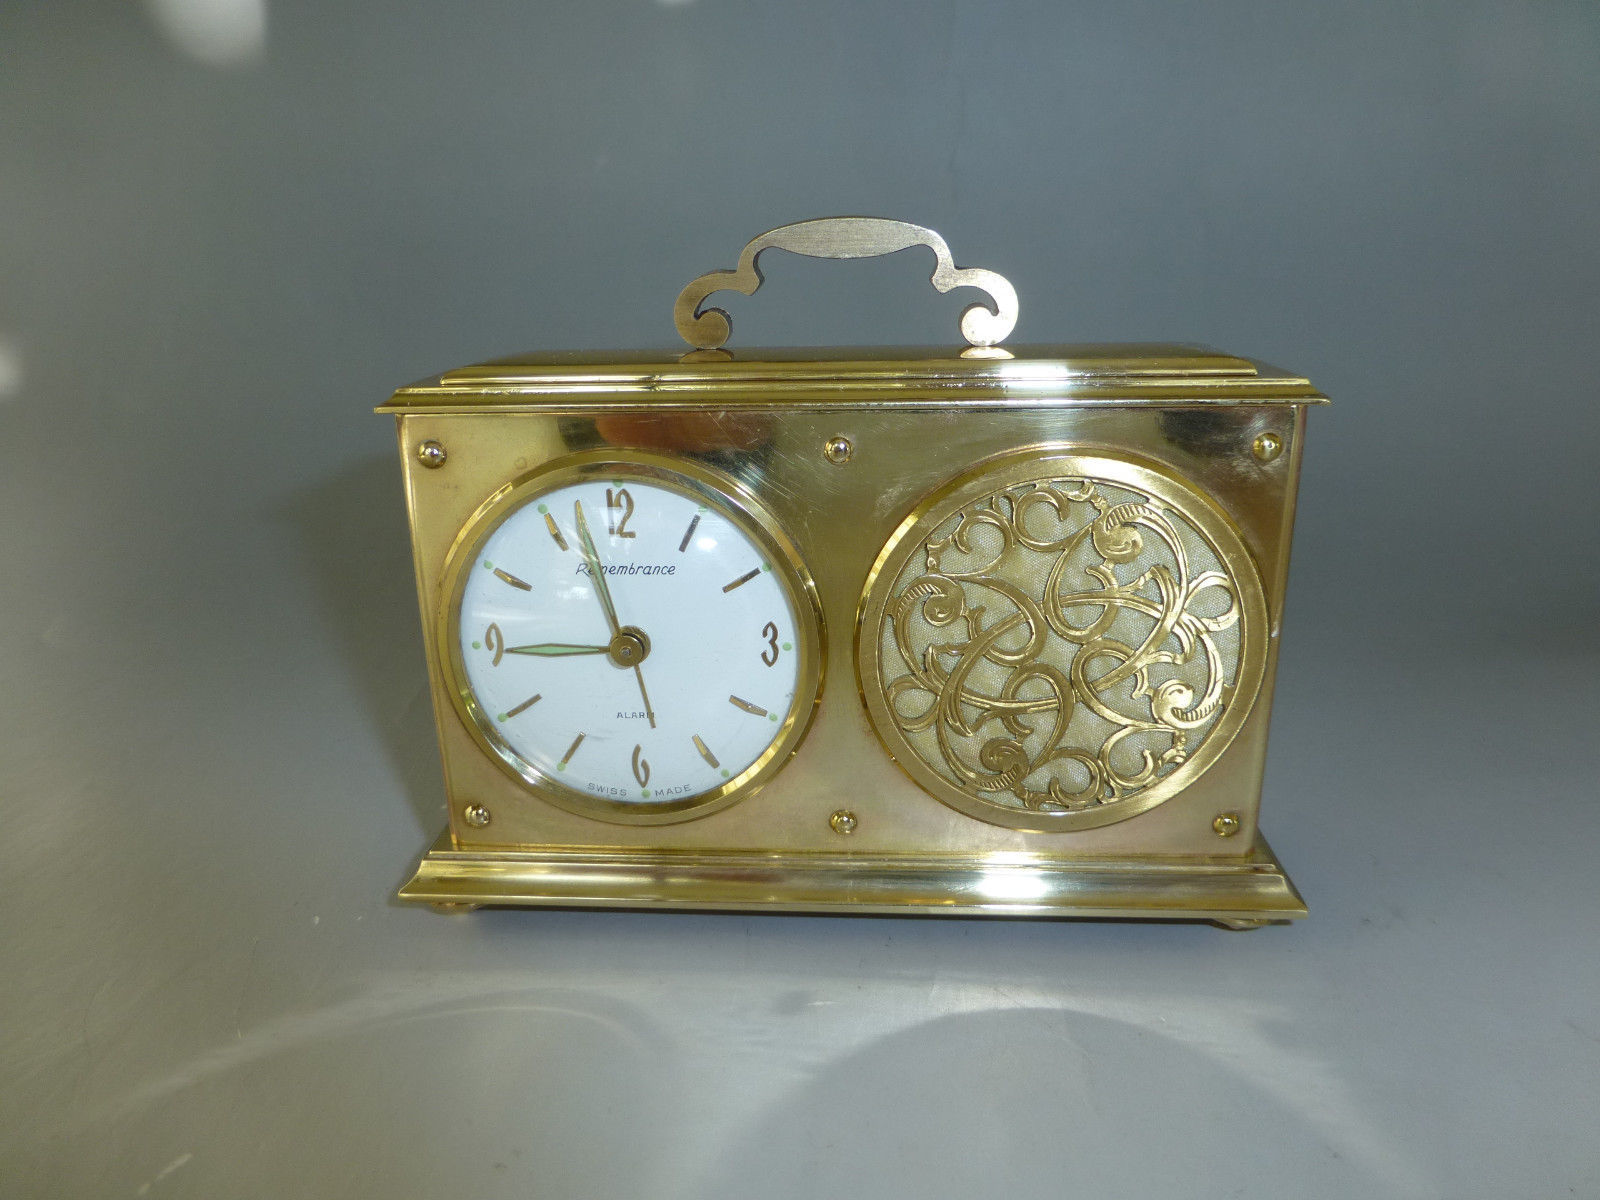 Exc Vintage Swiss Musical Alarm Clock With and 50 similar items